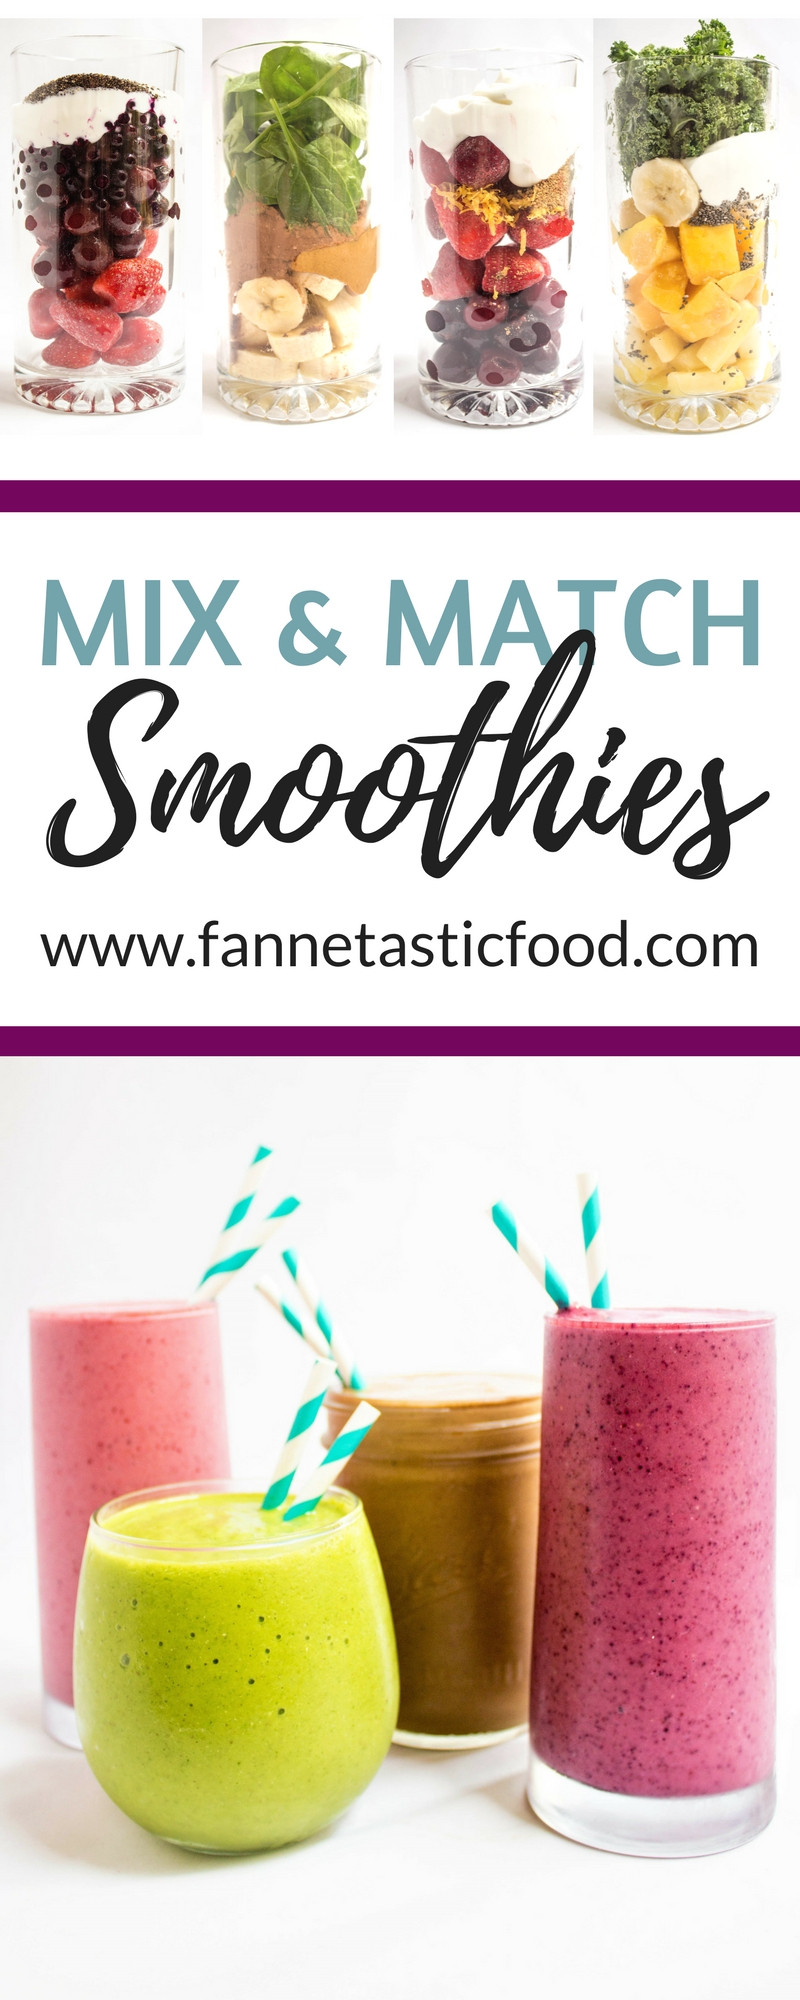 Delicious Smoothie Recipes  Mix & Match Healthy Smoothie Recipes Refreshing and